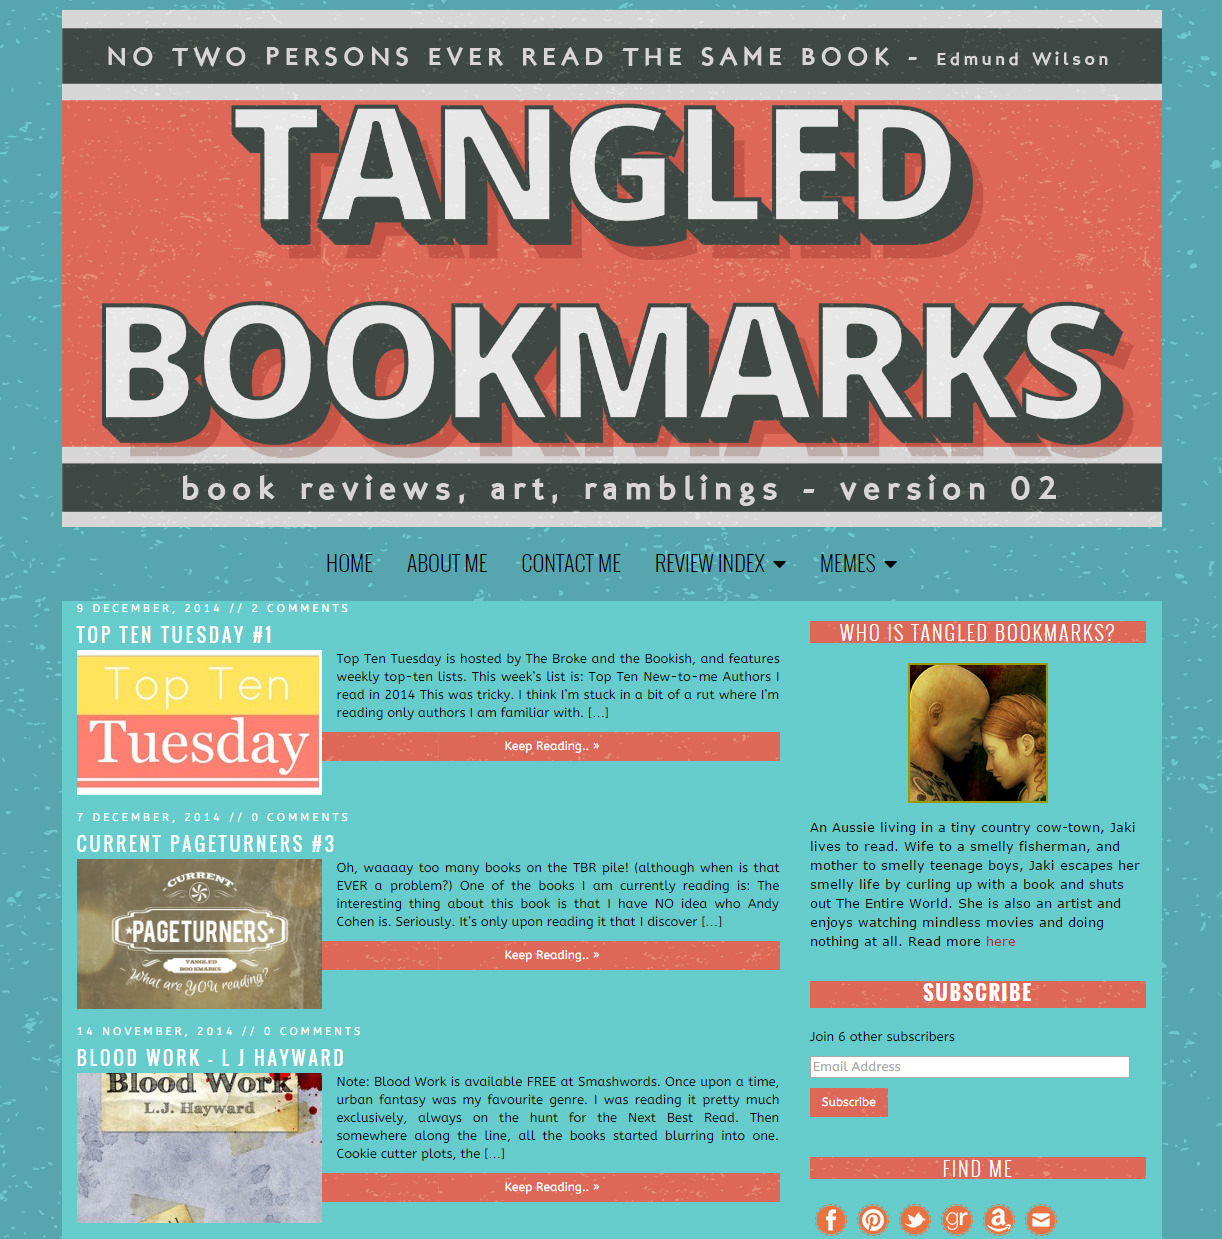 Tangled Bookmarks blog design